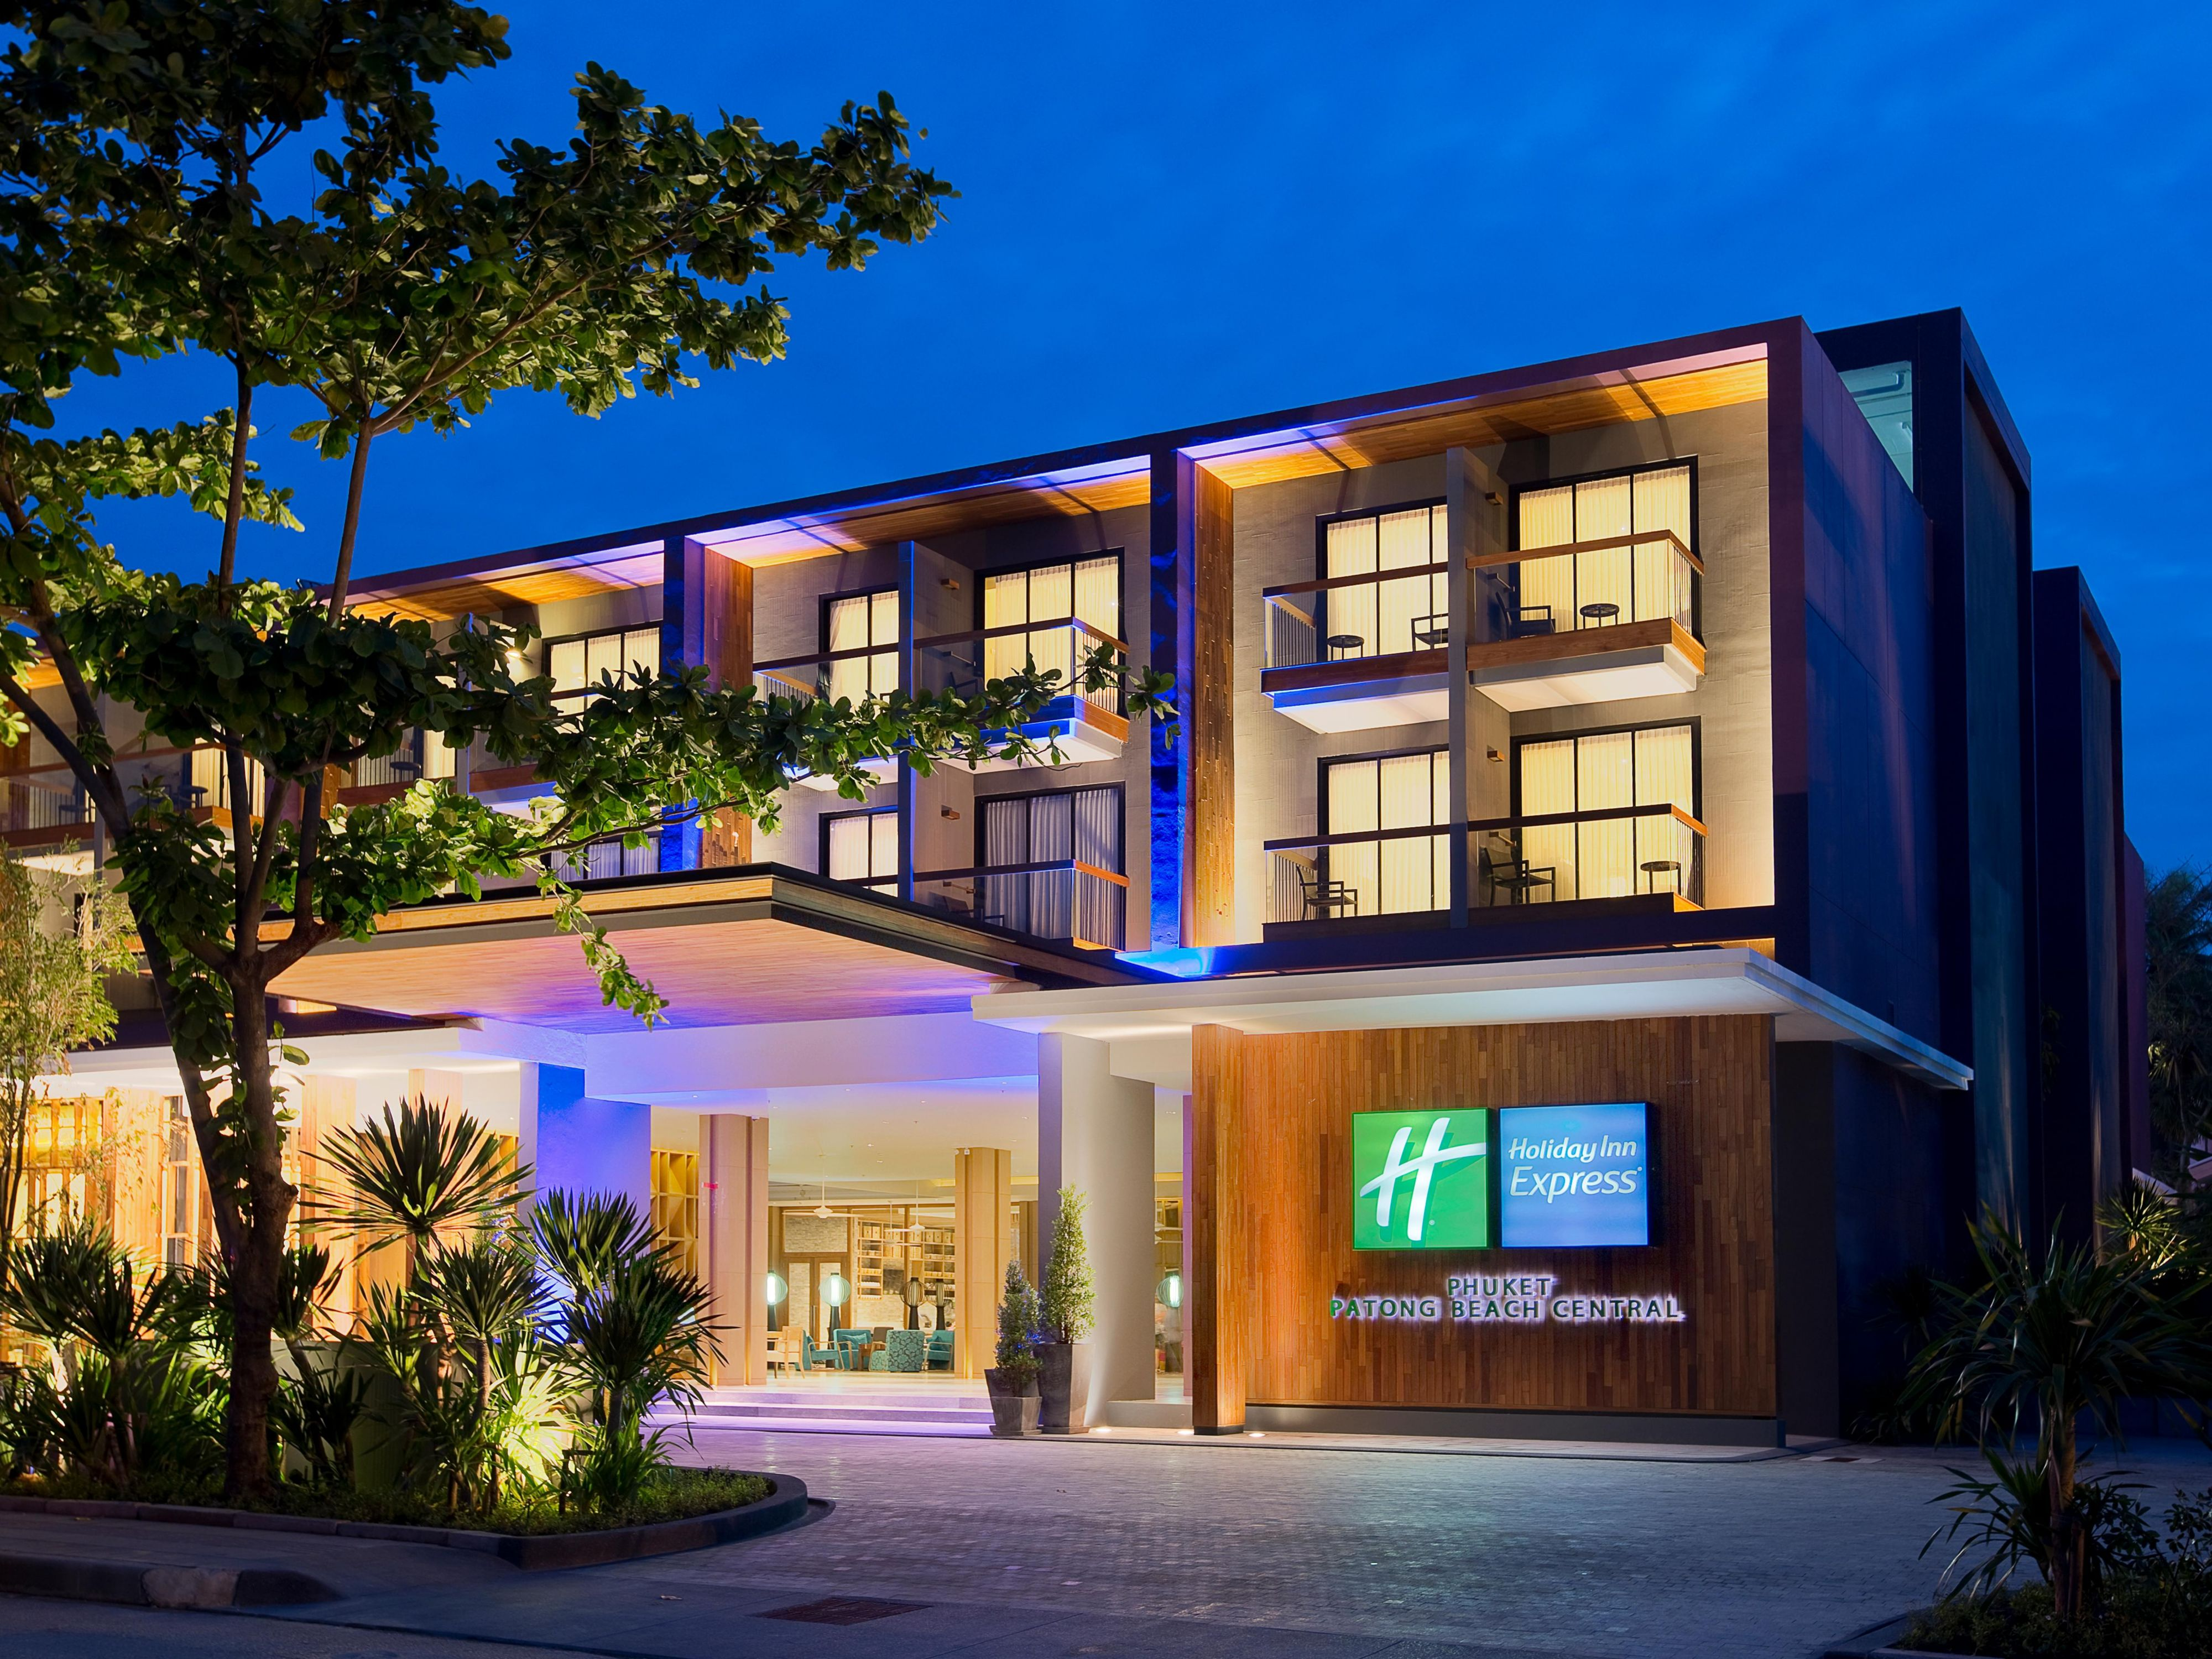 Holiday Inn Express Phuket Patong Beach Central Hotel